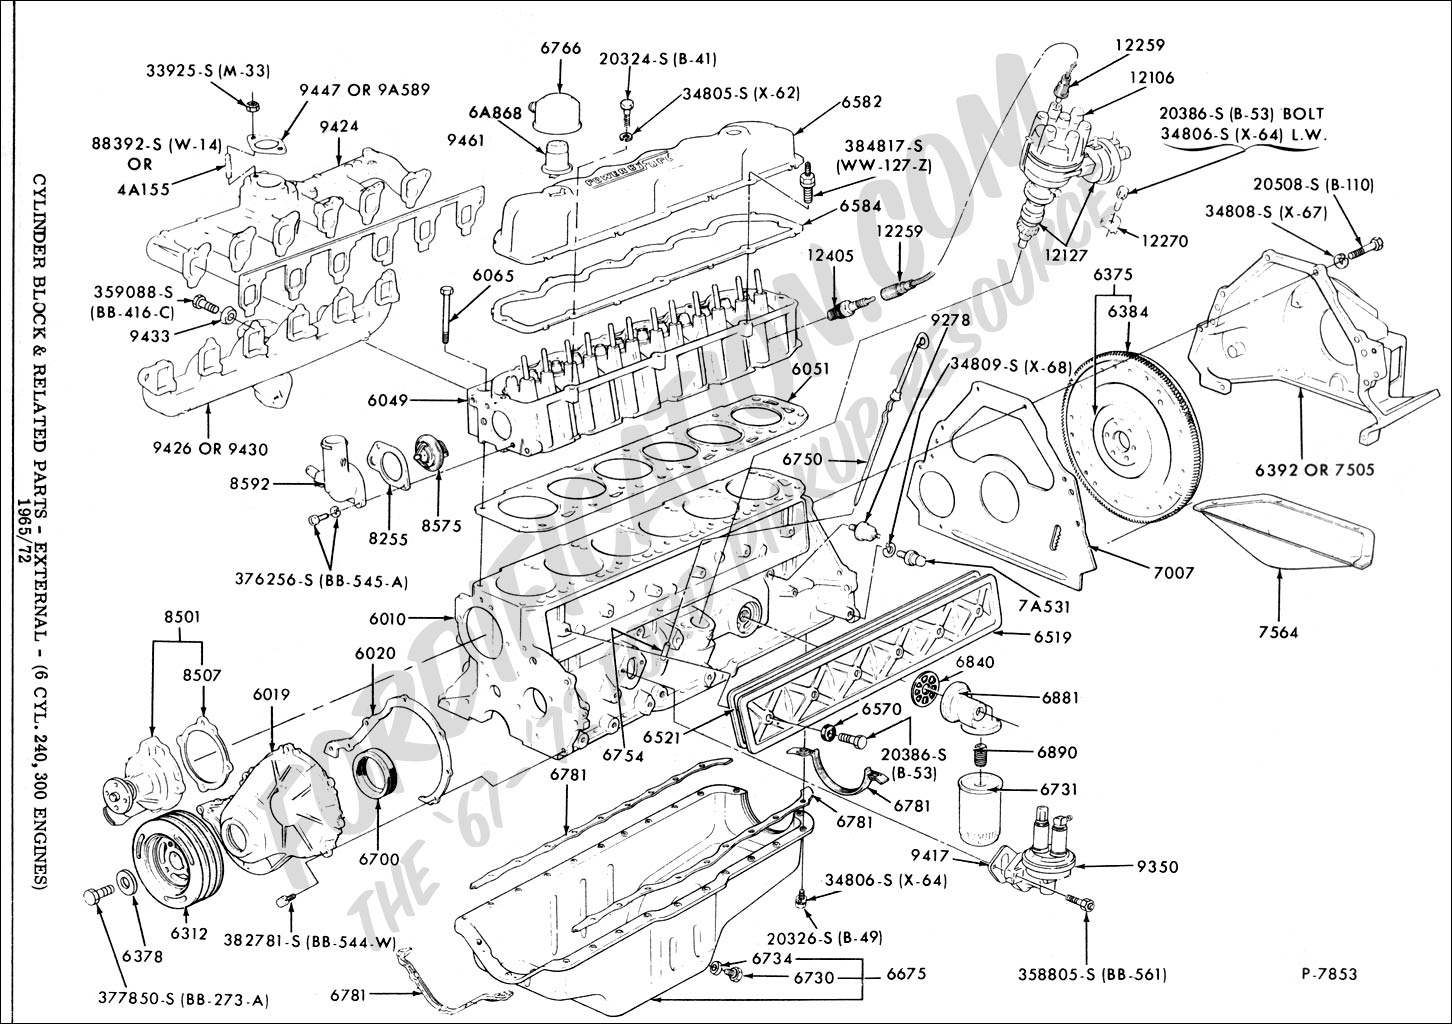 Optispark Ignition Info moreover Schematics e besides Distributor Wiring Diagram 350 Hei Chevy Engine additionally 806754 212 Code Loss Of Input To Pcm Or Spout Circuit Grounded as well Chevrolet Camaro 2 5 1986 Specs And Images. on 460 7 5 1994 ford engine diagram